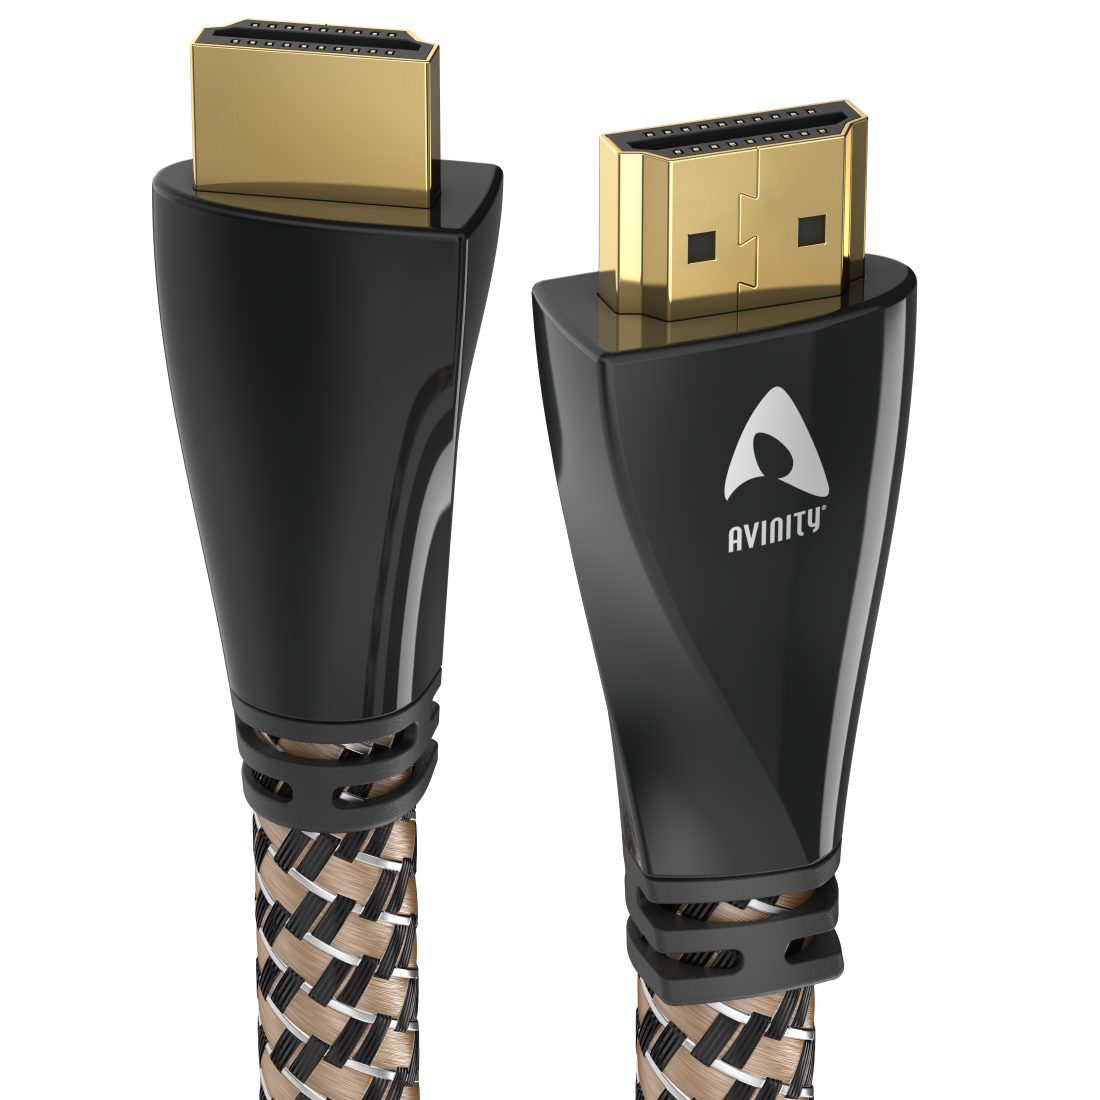 abx High-Res Image - Avinity, High Speed HDMI™ Cable, Plug-Plug, Fabric, gold-plated, Ethernet, 2 m